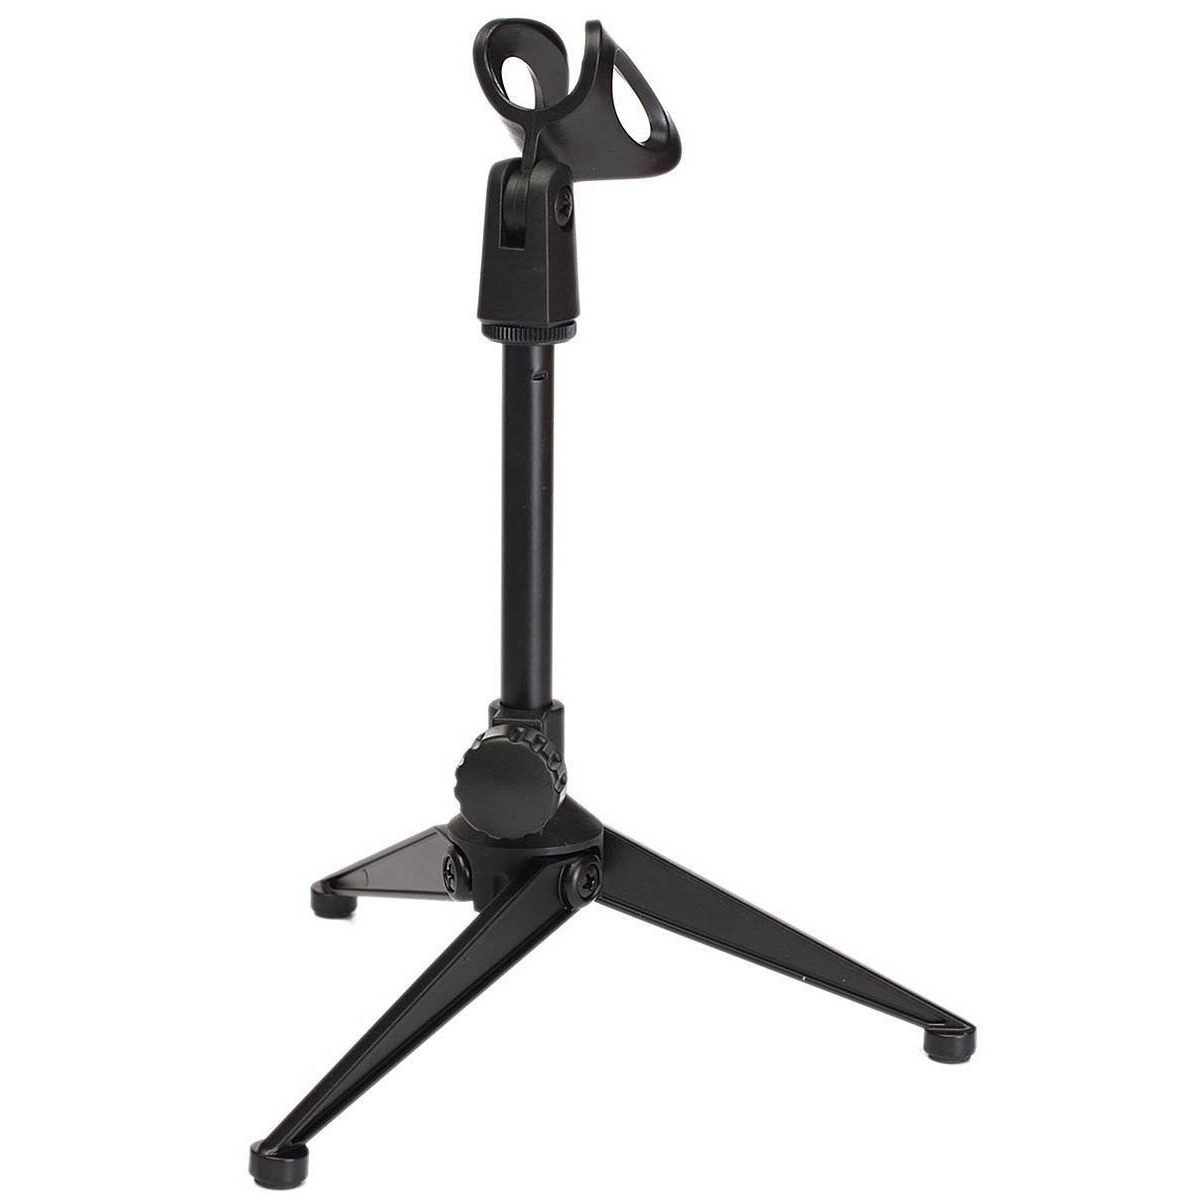 Microphone holder Microphone Stand Table stand microphone Mic table lightweight compact tripod design Stand holder with clamp adjustable recording mic microphone stand bracket tripod with dual phone holder multi function tripod tablet phone holder stand